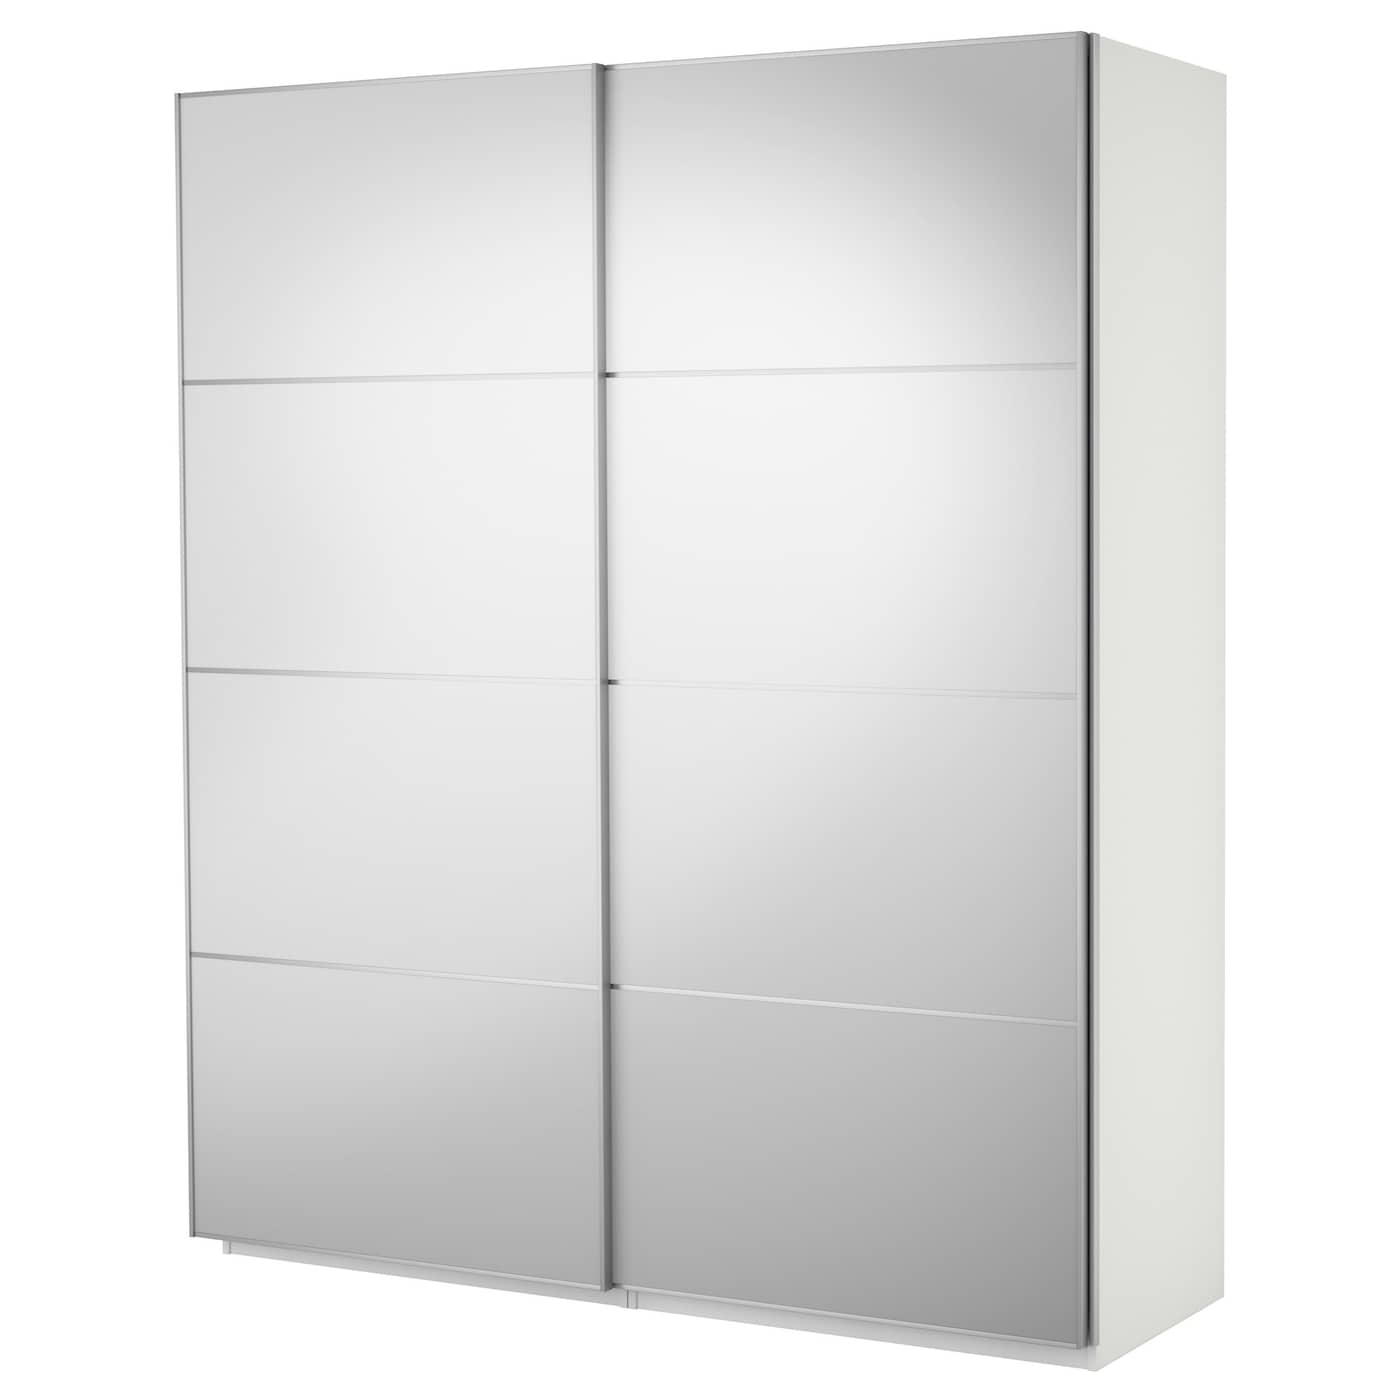 Ikea Pax Wardrobe With Sliding Doors Perfect Where E Is Limited Since The Frame Narrow